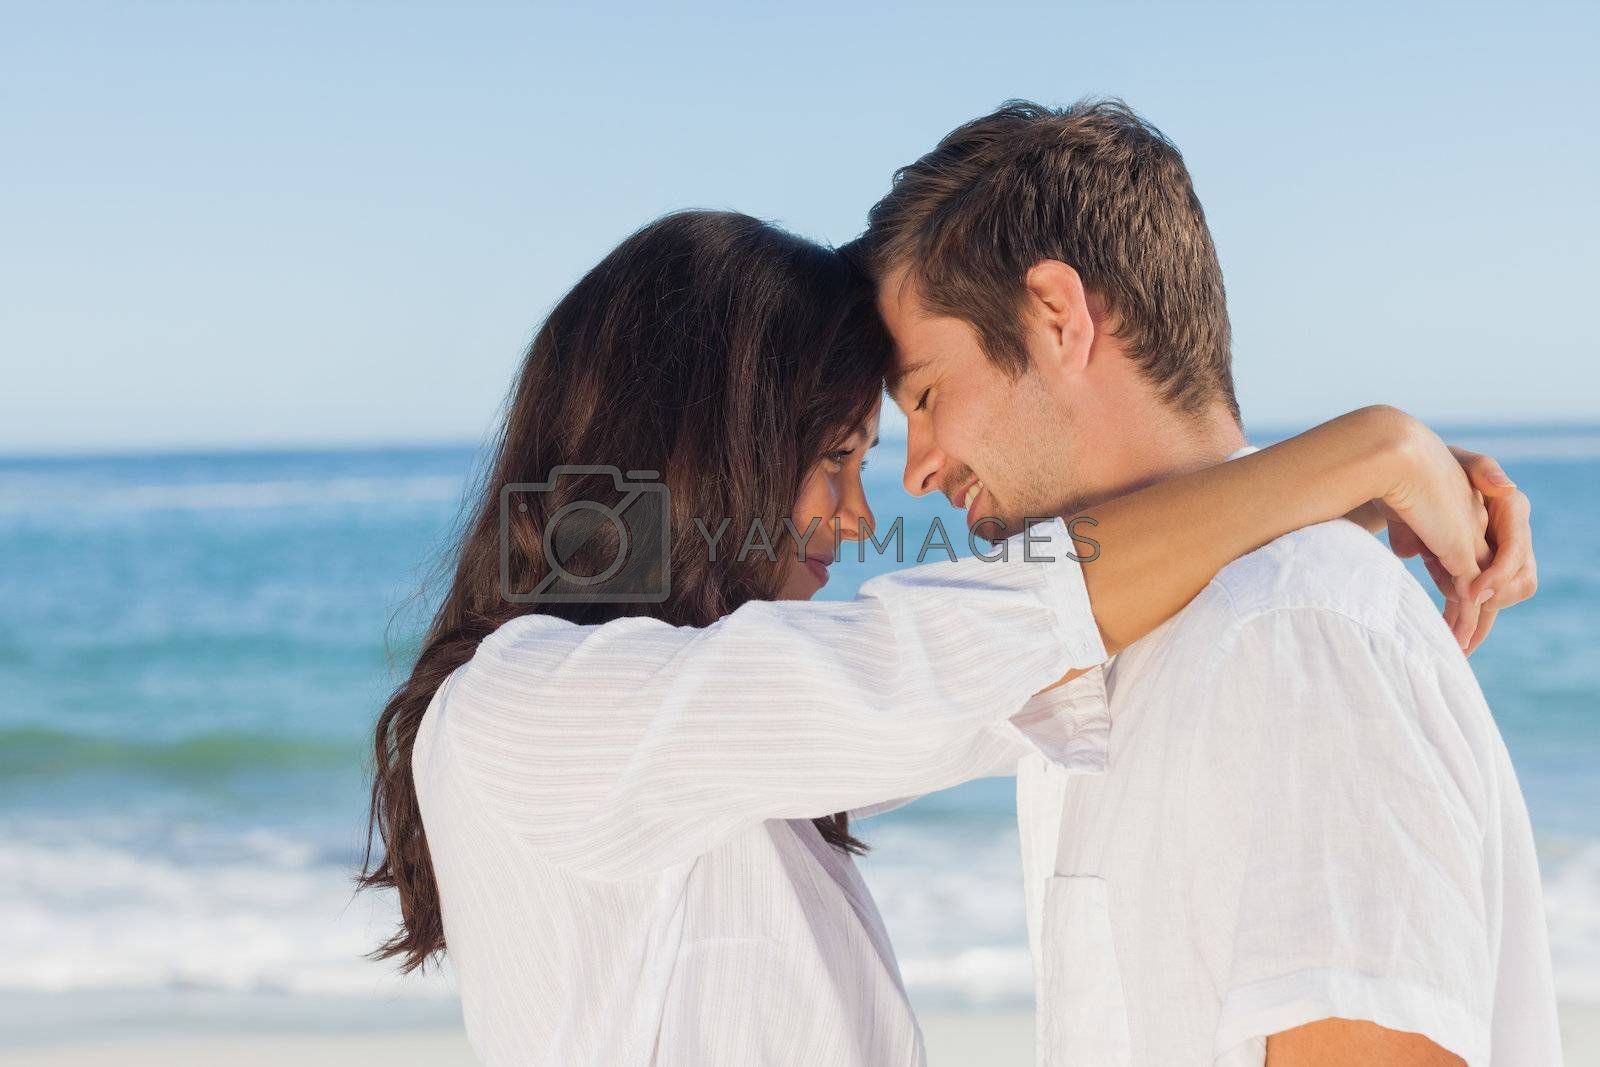 Couple embracing each other on the beach by Wavebreakmedia